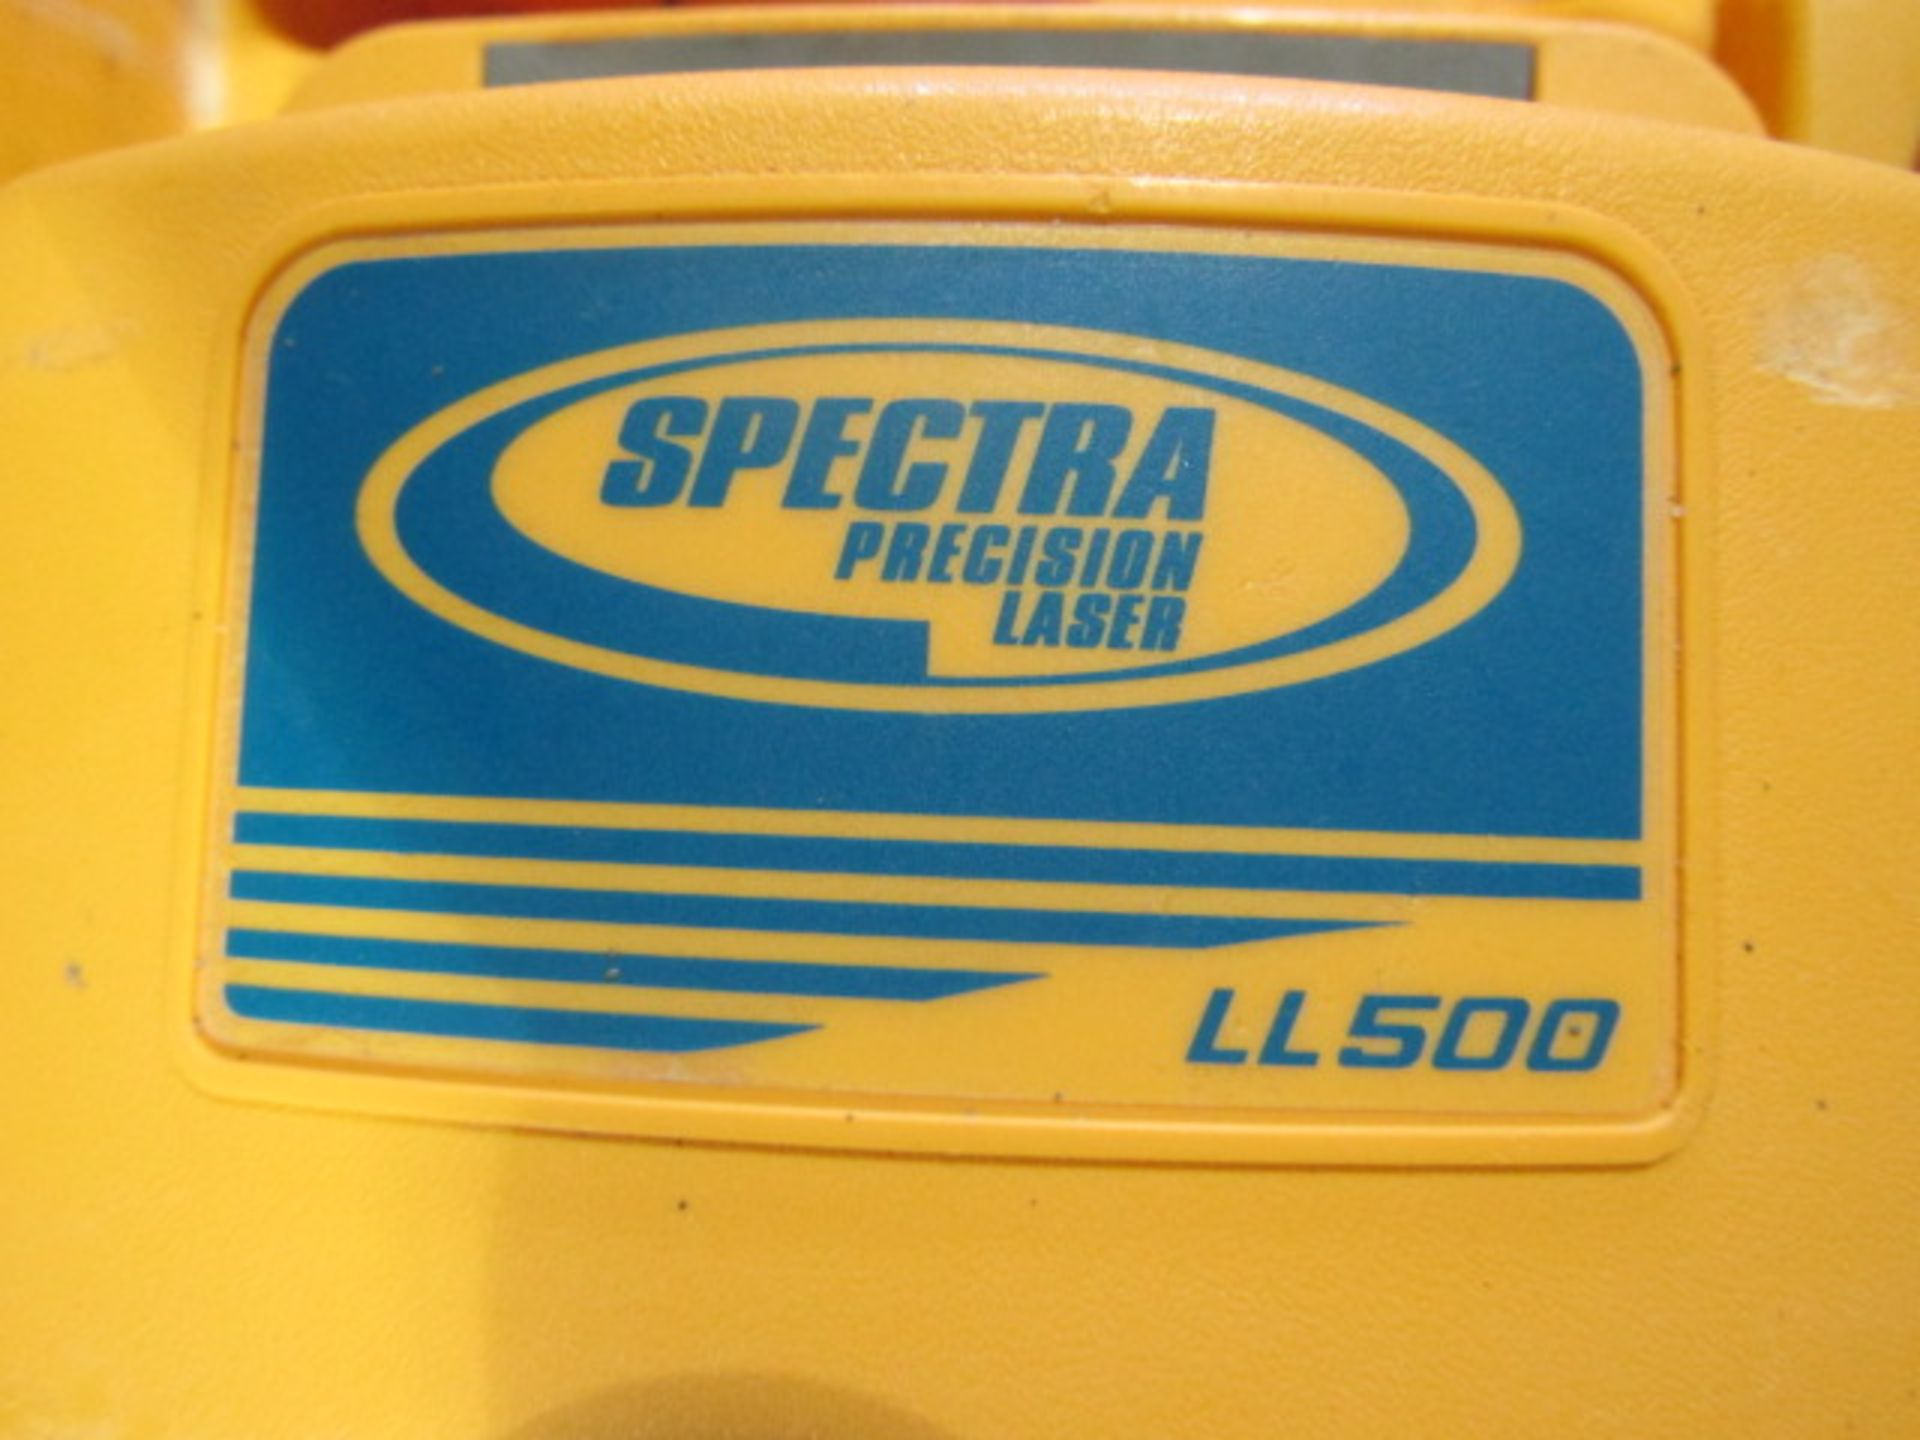 Lot 338 - Spectra LL500 Precision Laser, Calibrated 3/13/19 with HL700, Located in Winterset, IA